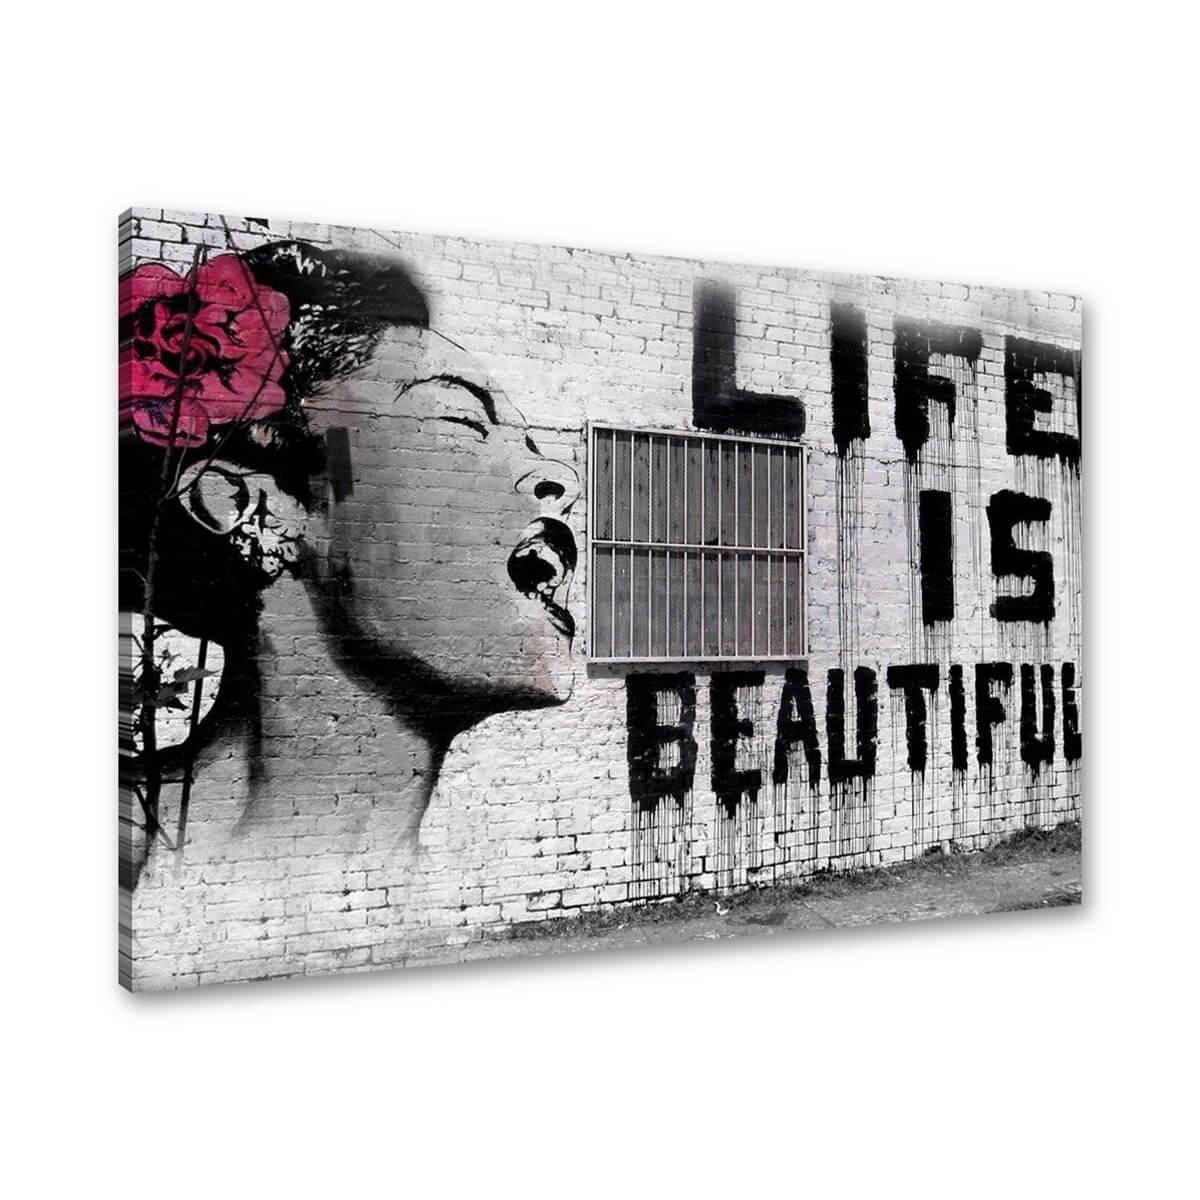 Tablou canvas graffiti arta stradala banksy life is beautiful pentru decor,  rama lemn, 80x60cm,  VSR4166